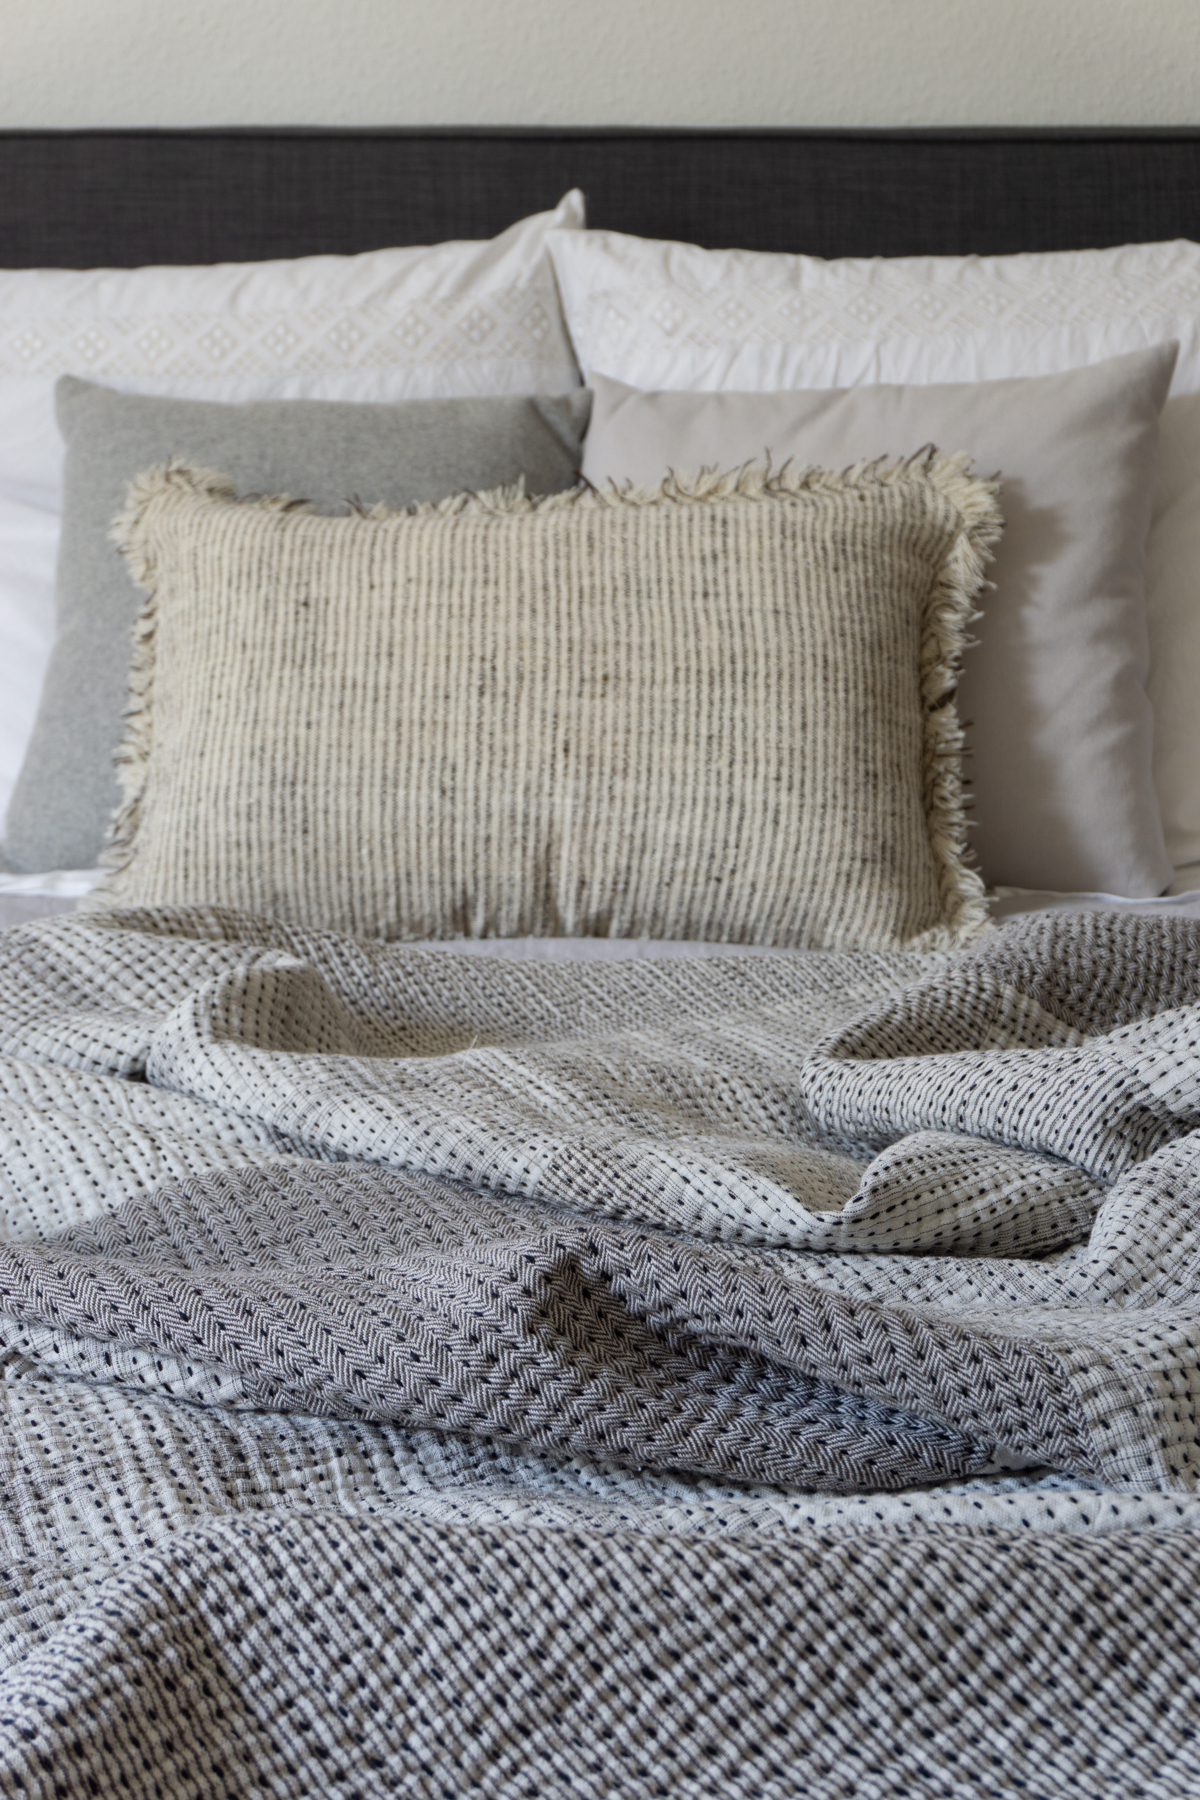 stitch-by-stitch-sustainable-ethical-organic-bedding-textiles-interior-design-bedroom-rg-daily-blog-8.jpg